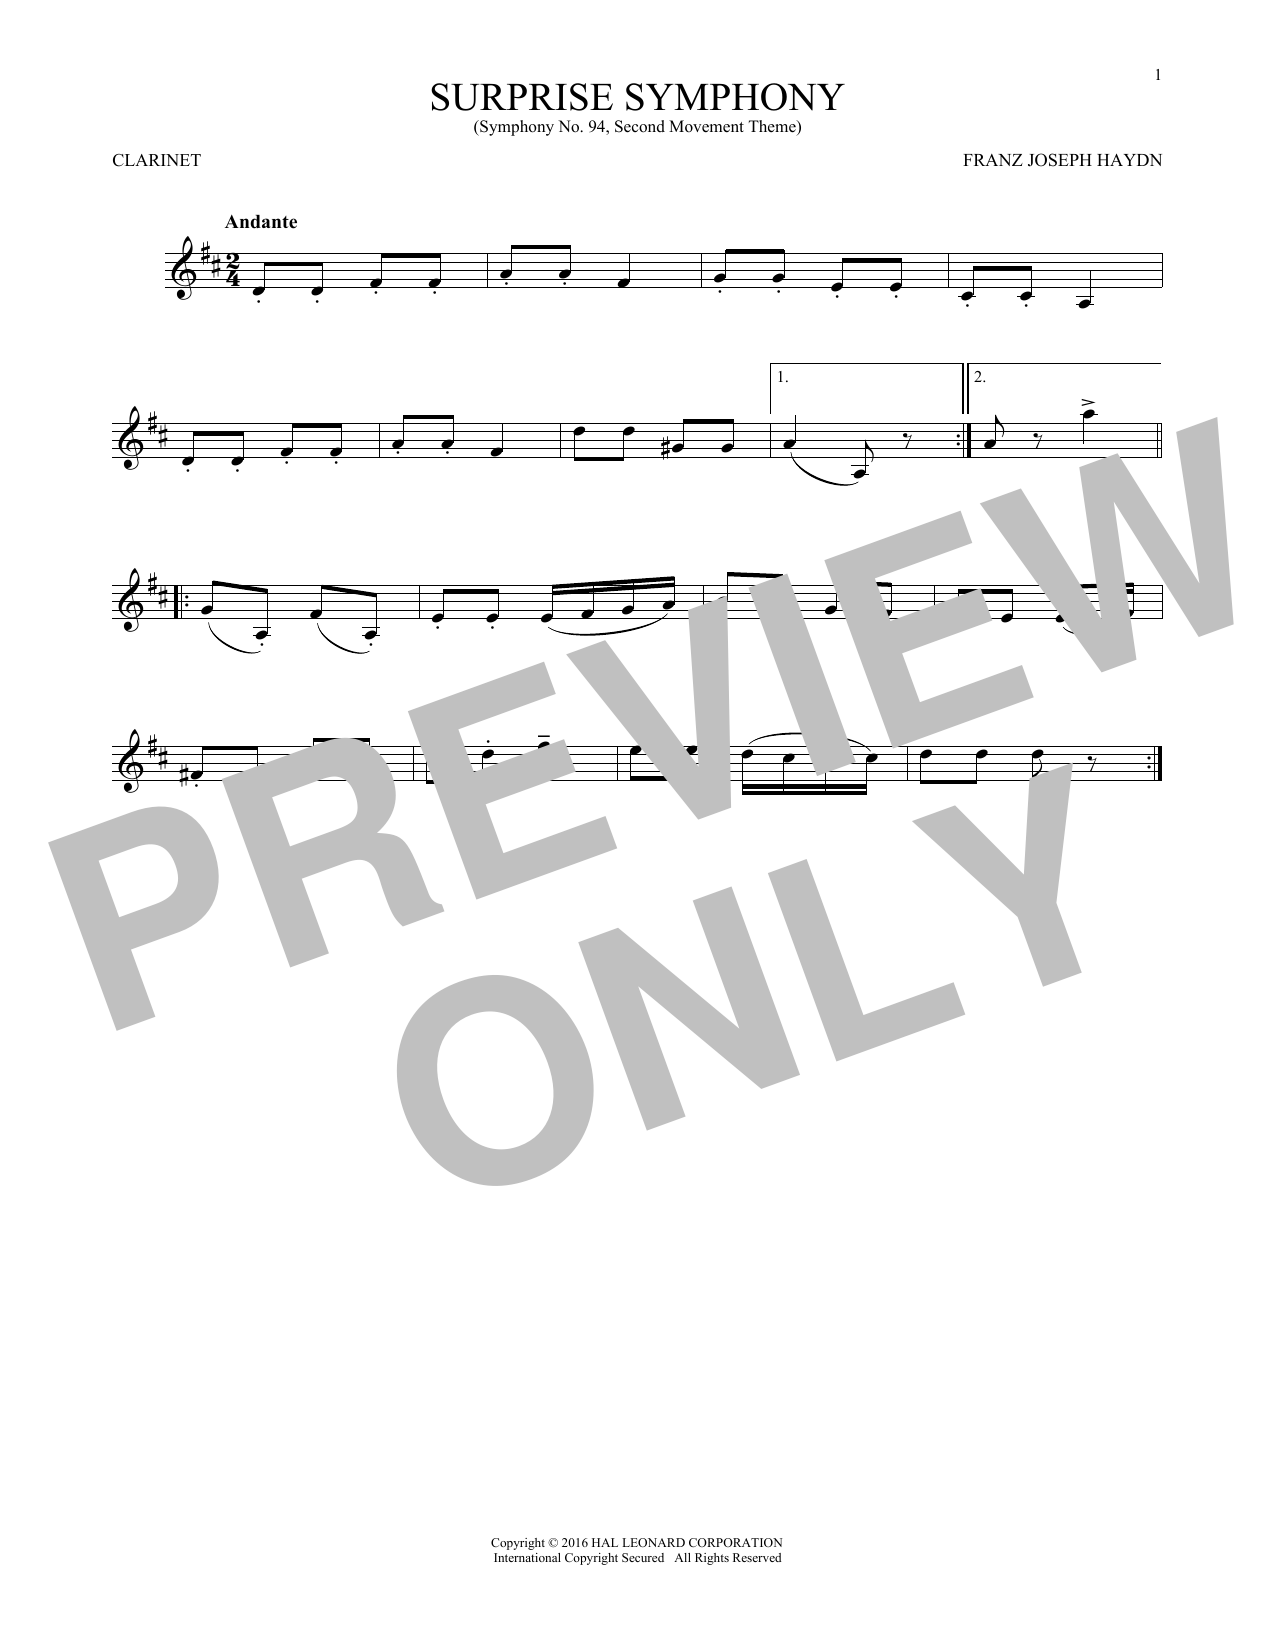 The Surprise Symphony (Clarinet Solo)